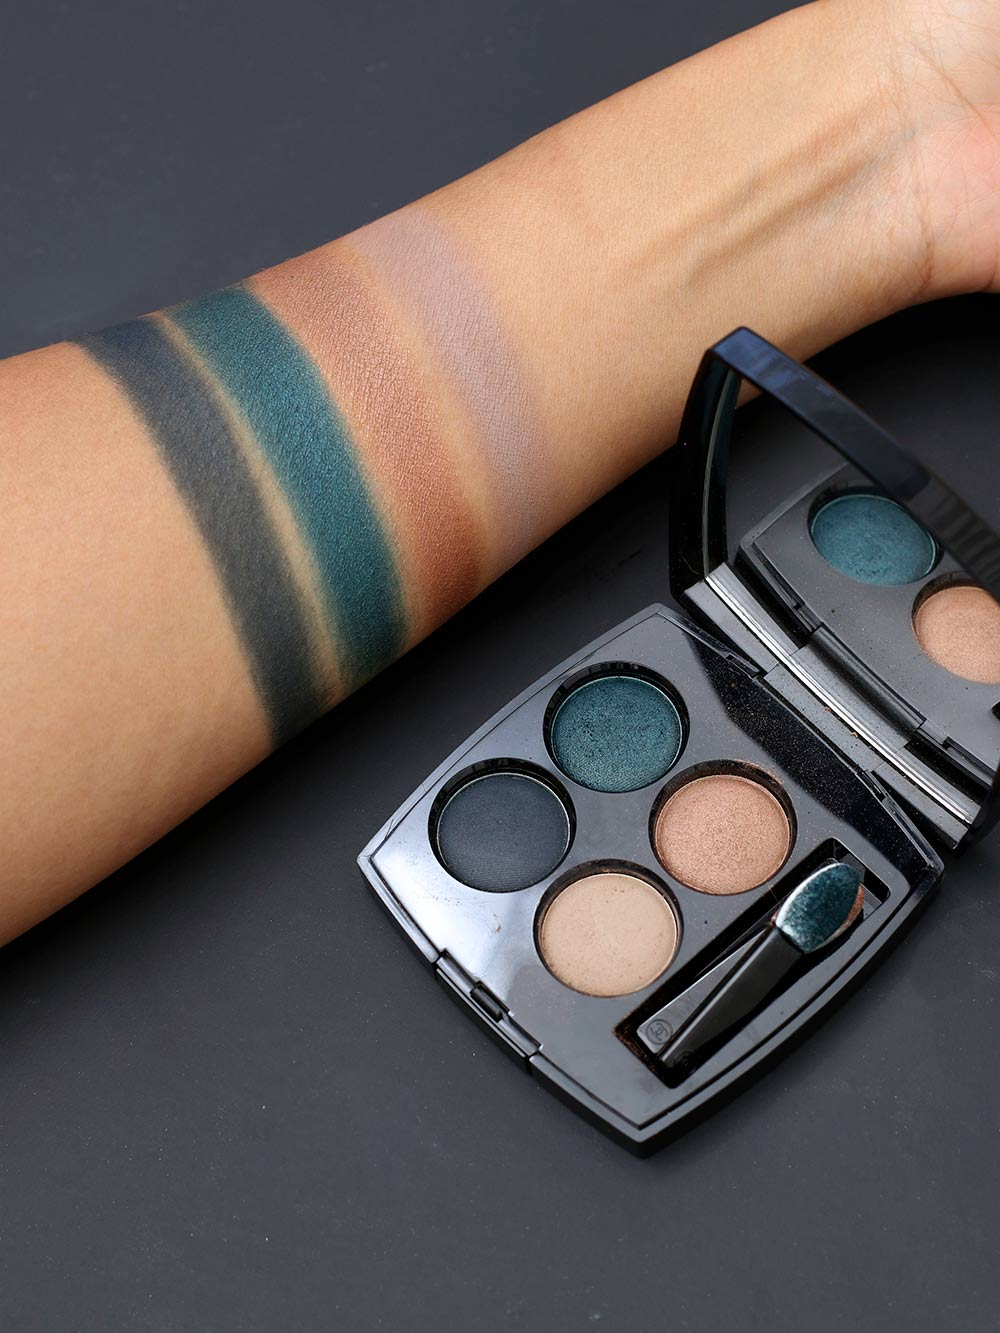 Chanel Road Movie Les 4 Ombres Eyeshadow Palette Review